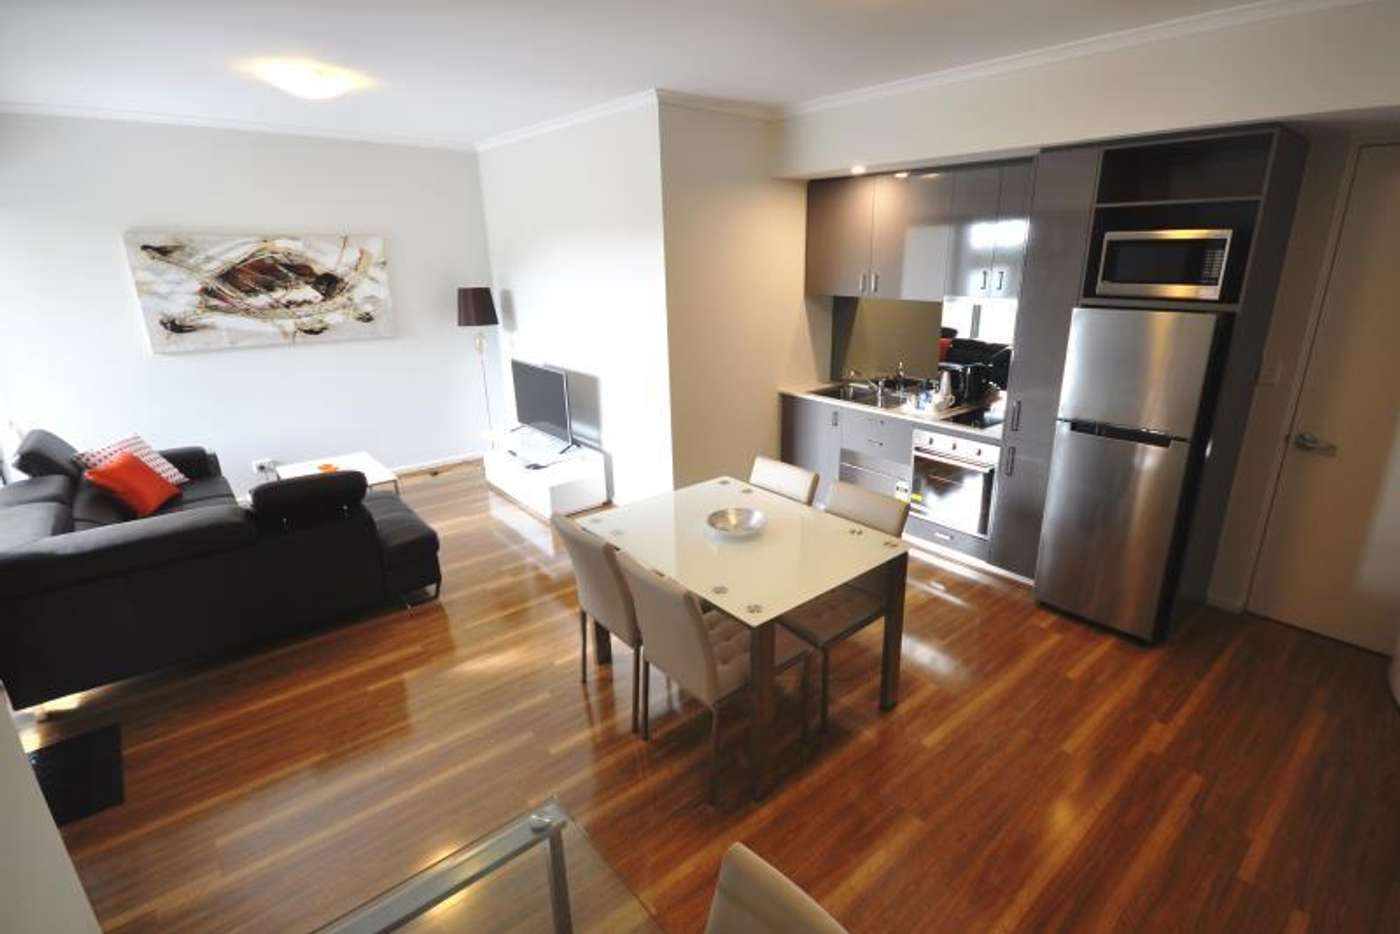 Main view of Homely apartment listing, 4/35 Wellington Street, East Perth WA 6004